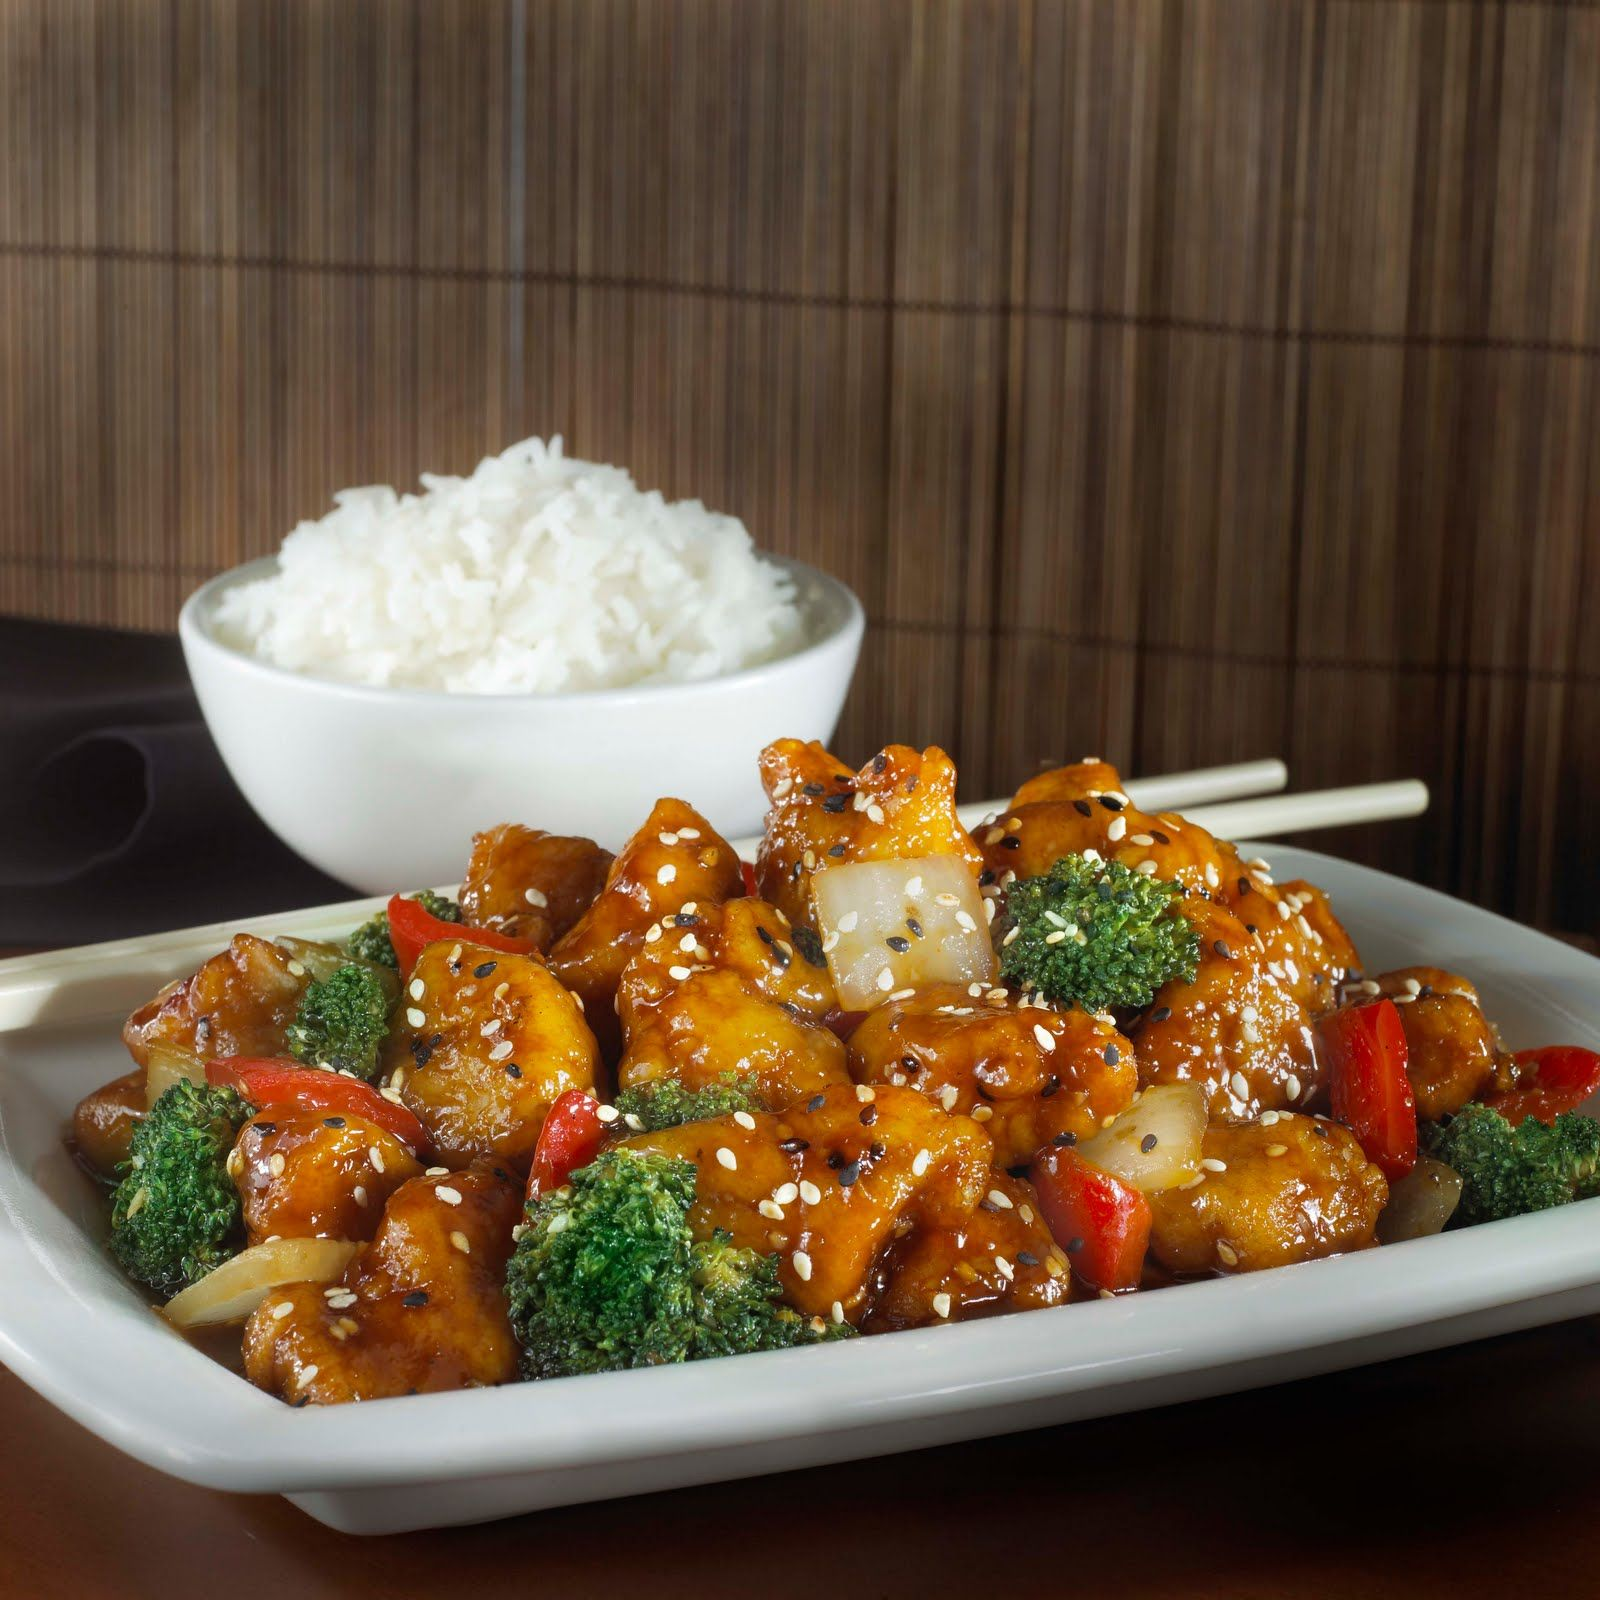 Chinese Food Food Sesame Chicken Good Taste Tastes Rice Yummy Restaurant Recipes Chinese Food Authentic Chinese Recipes